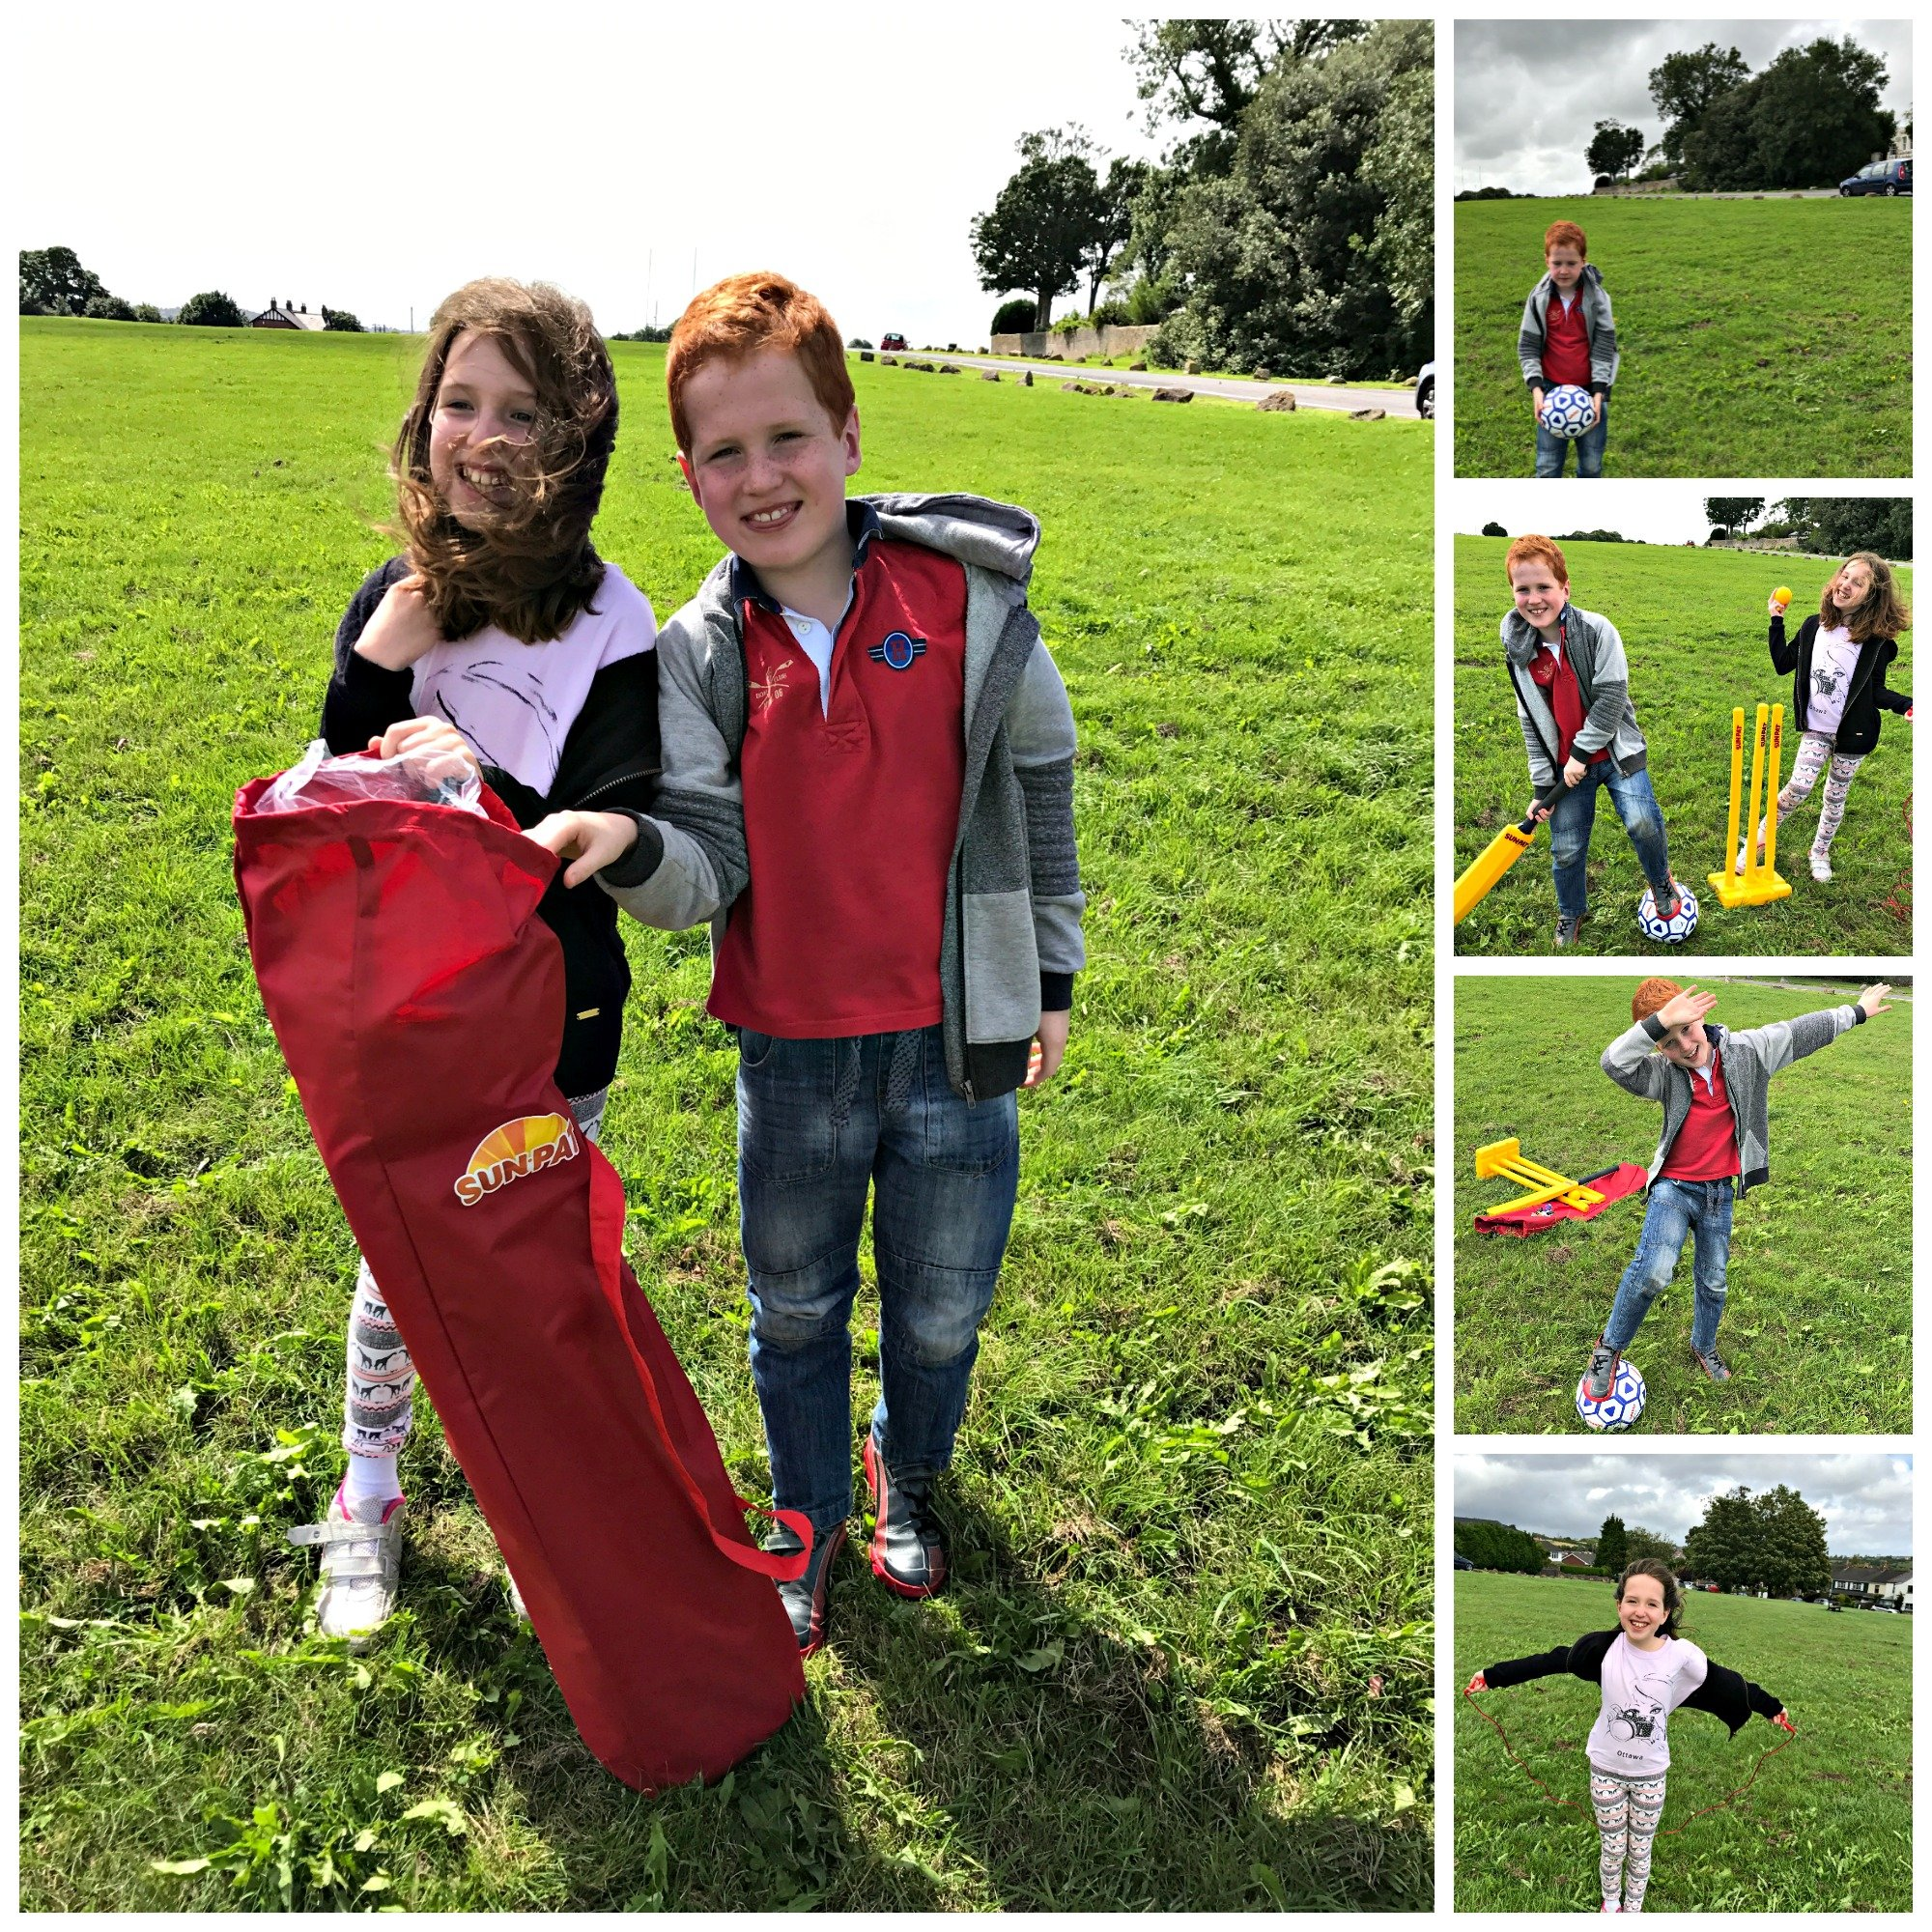 Win A Sports Kit & Fuel Your Family With Sun-Pat This Summer